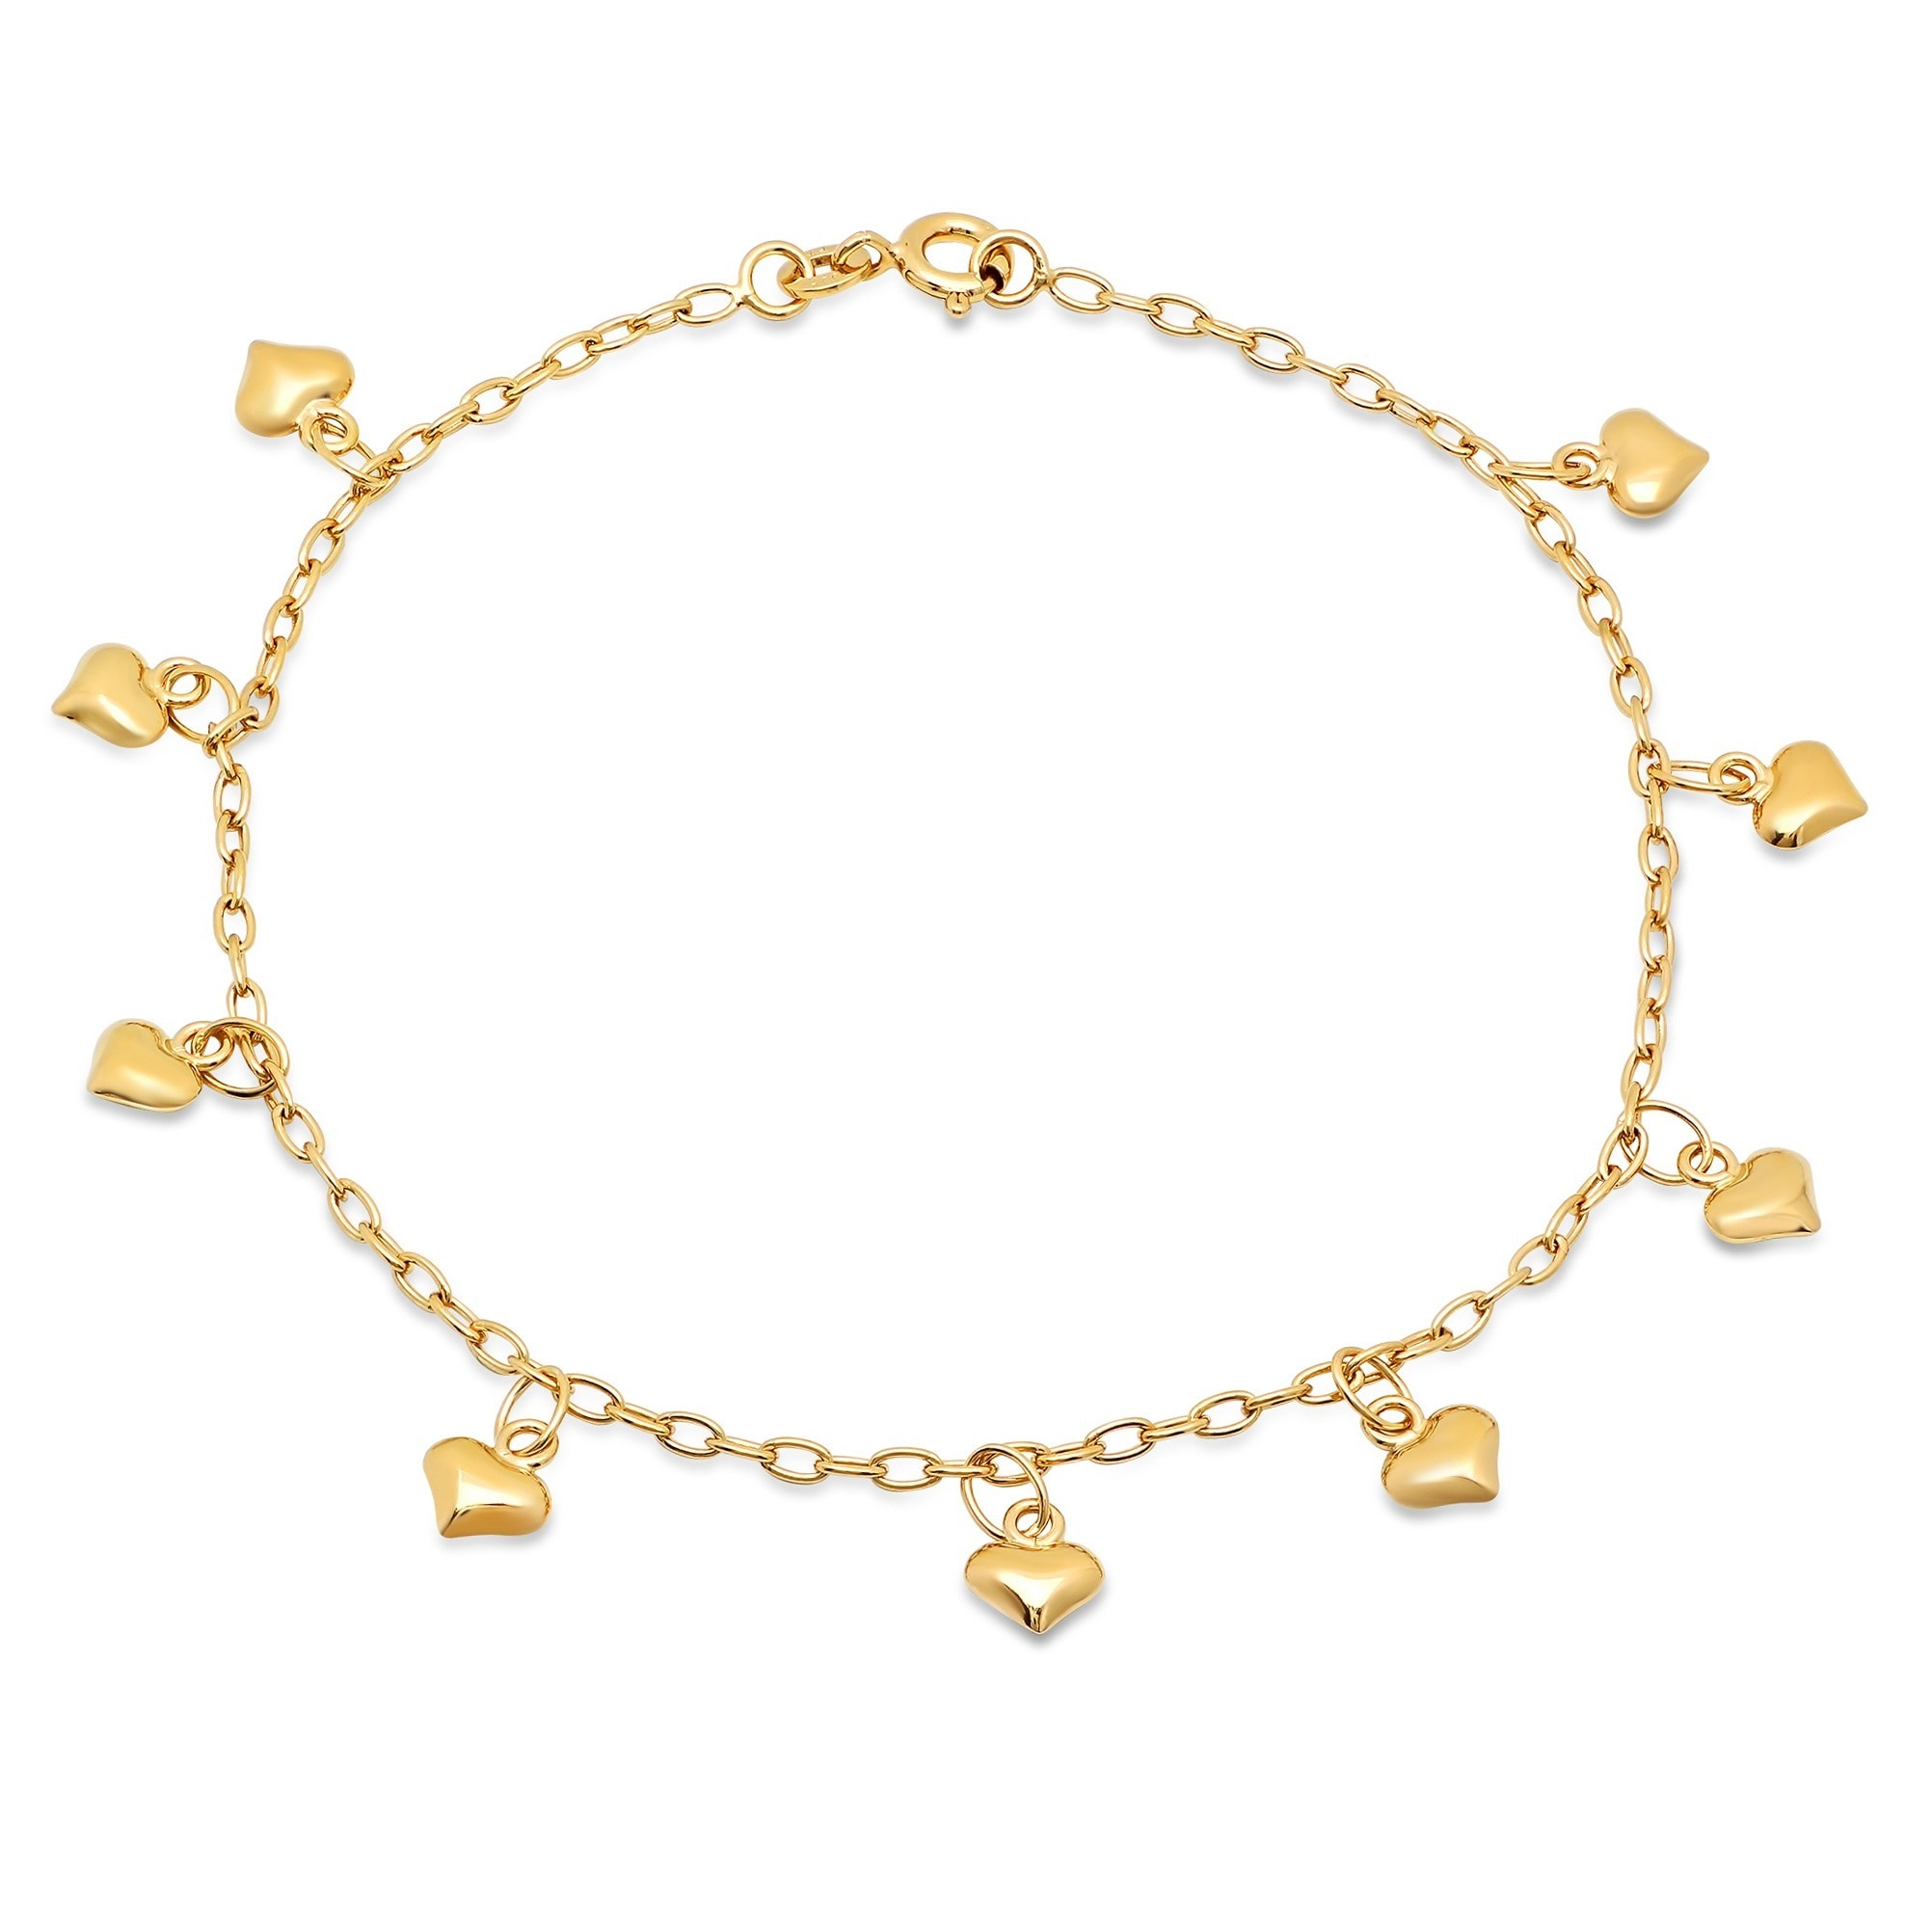 metallic fullscreen gold mini heart rose view anklet mia jewelry zeuner in lyst jennifer karat diamond